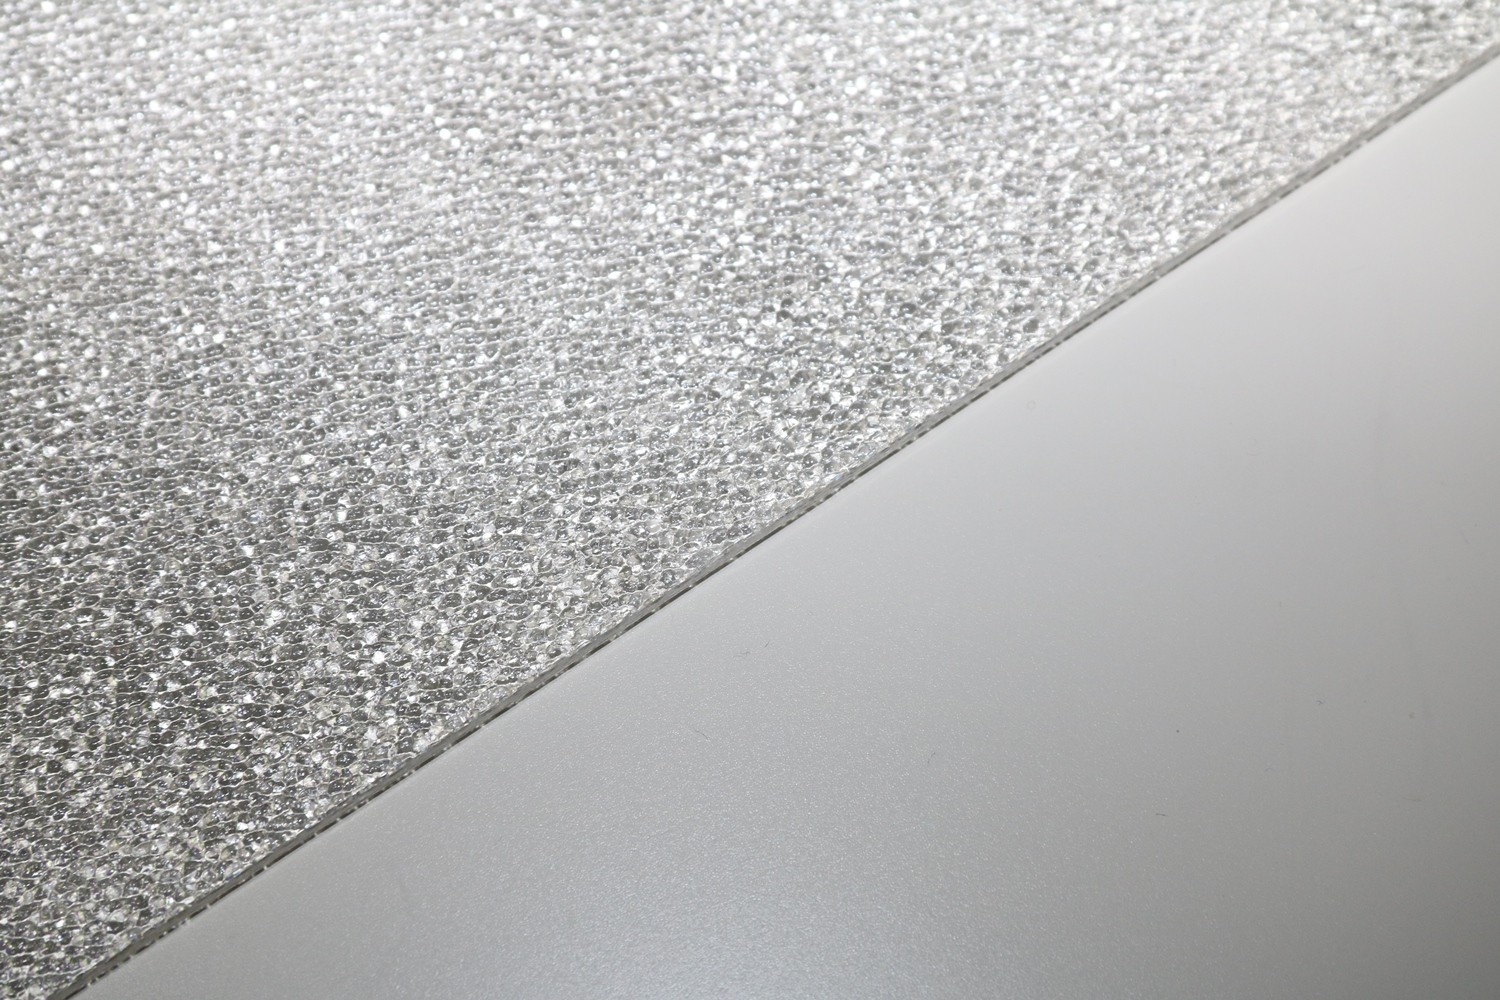 Polycarbonate floor protection